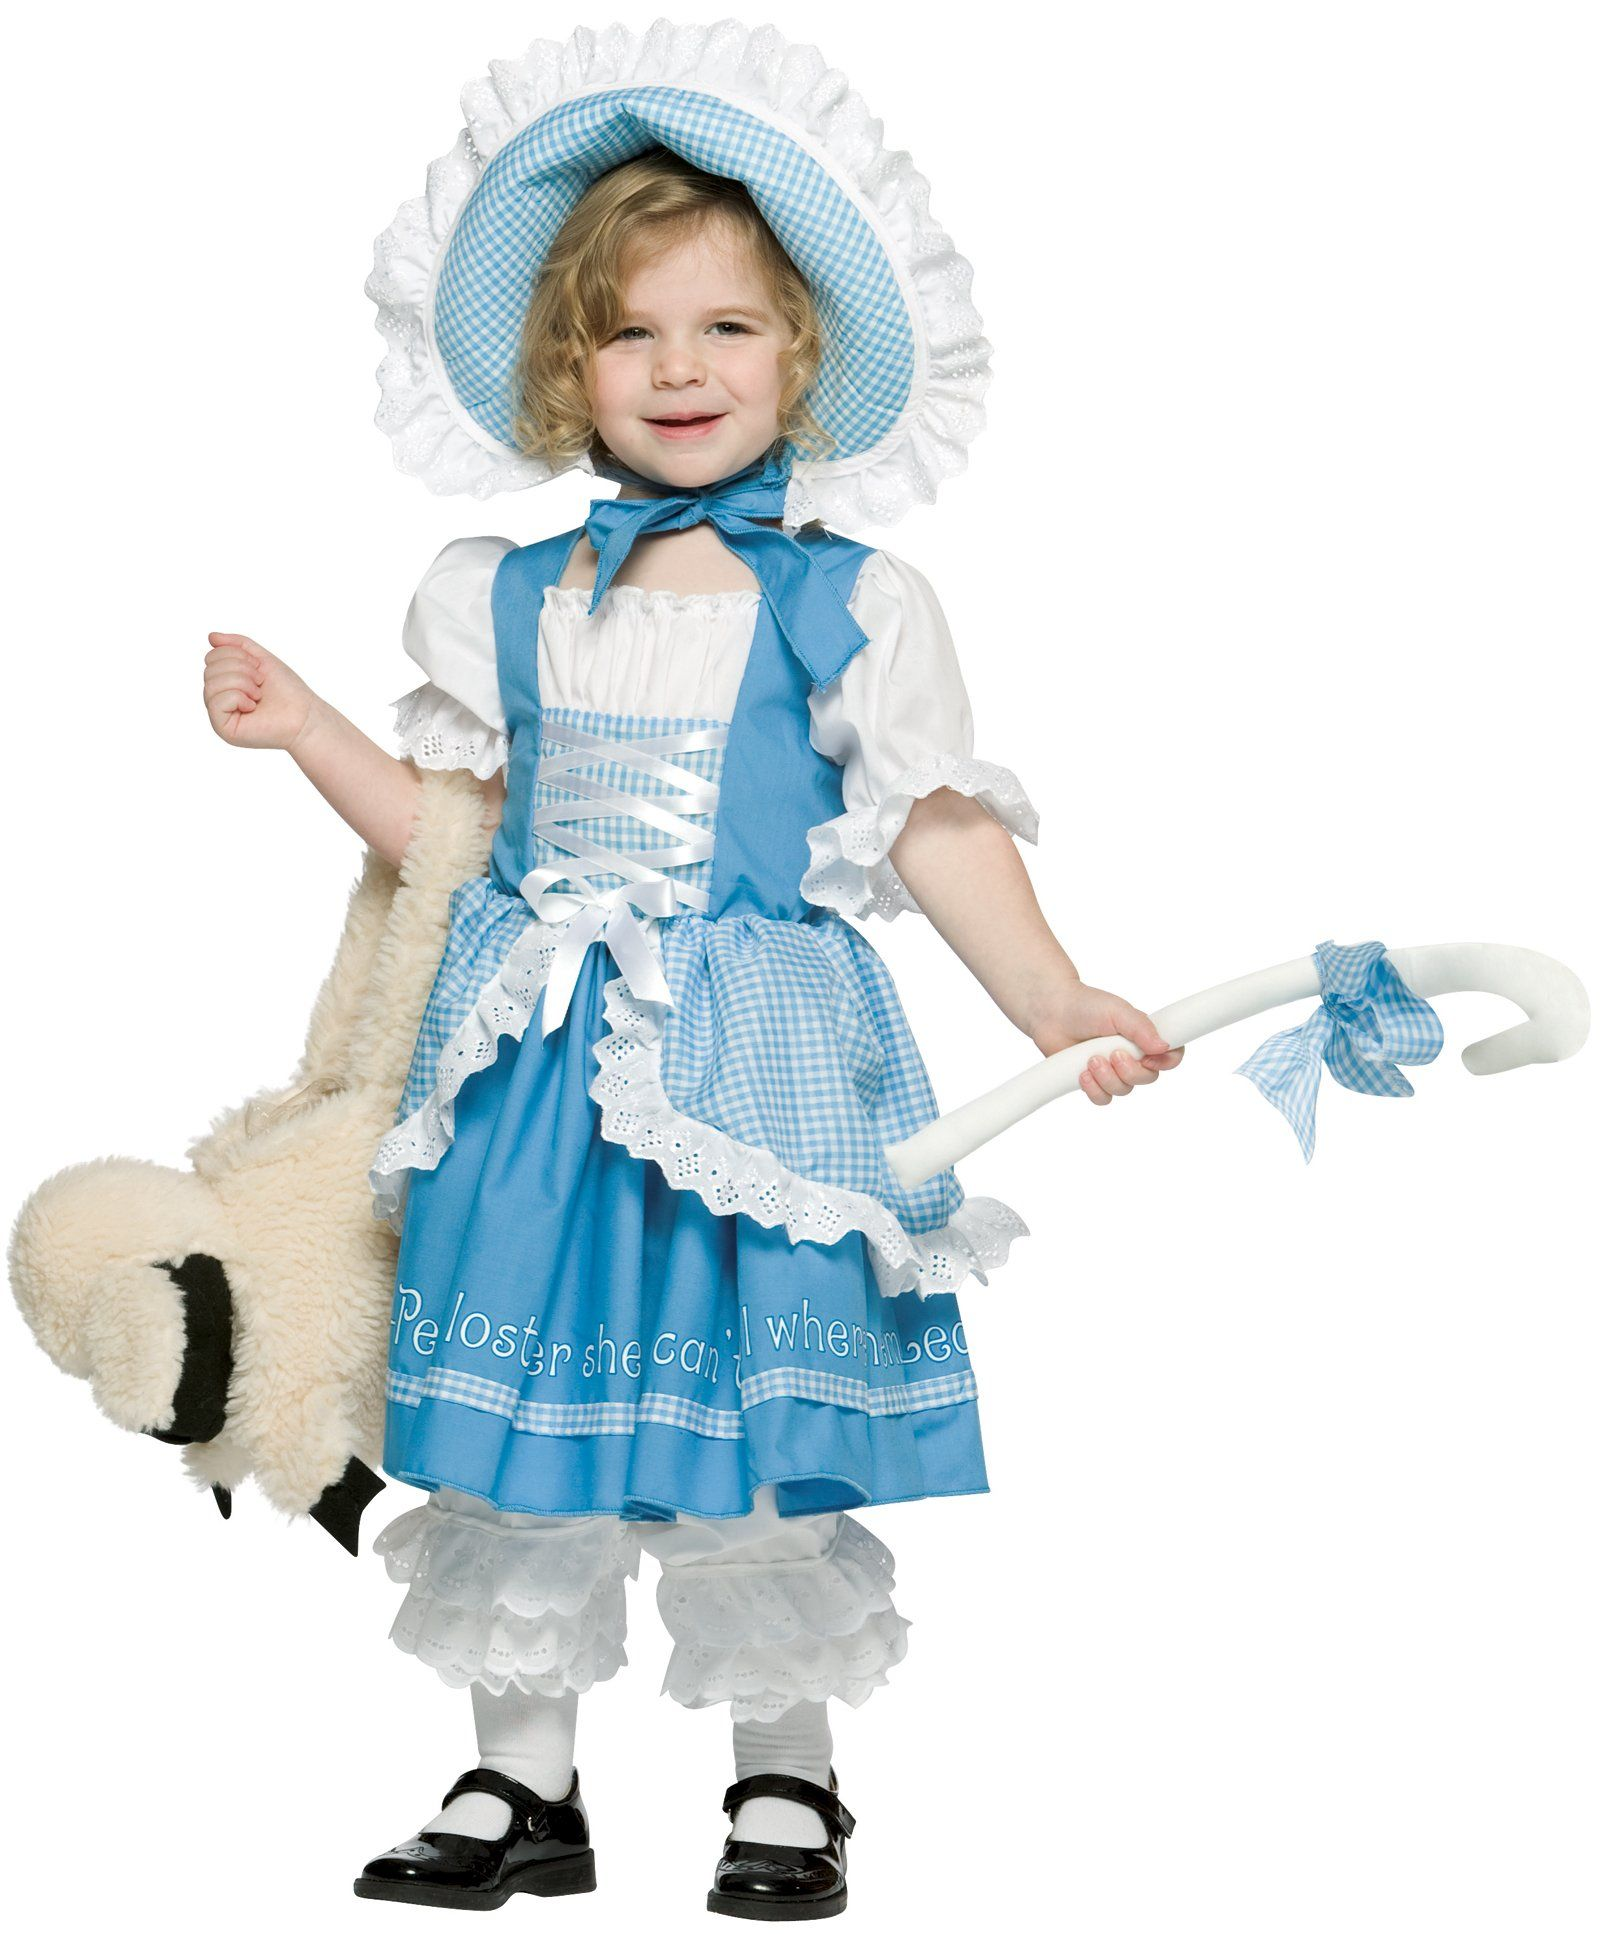 Kids Costumes For A Low Price http://greathalloweencostumes.org ...